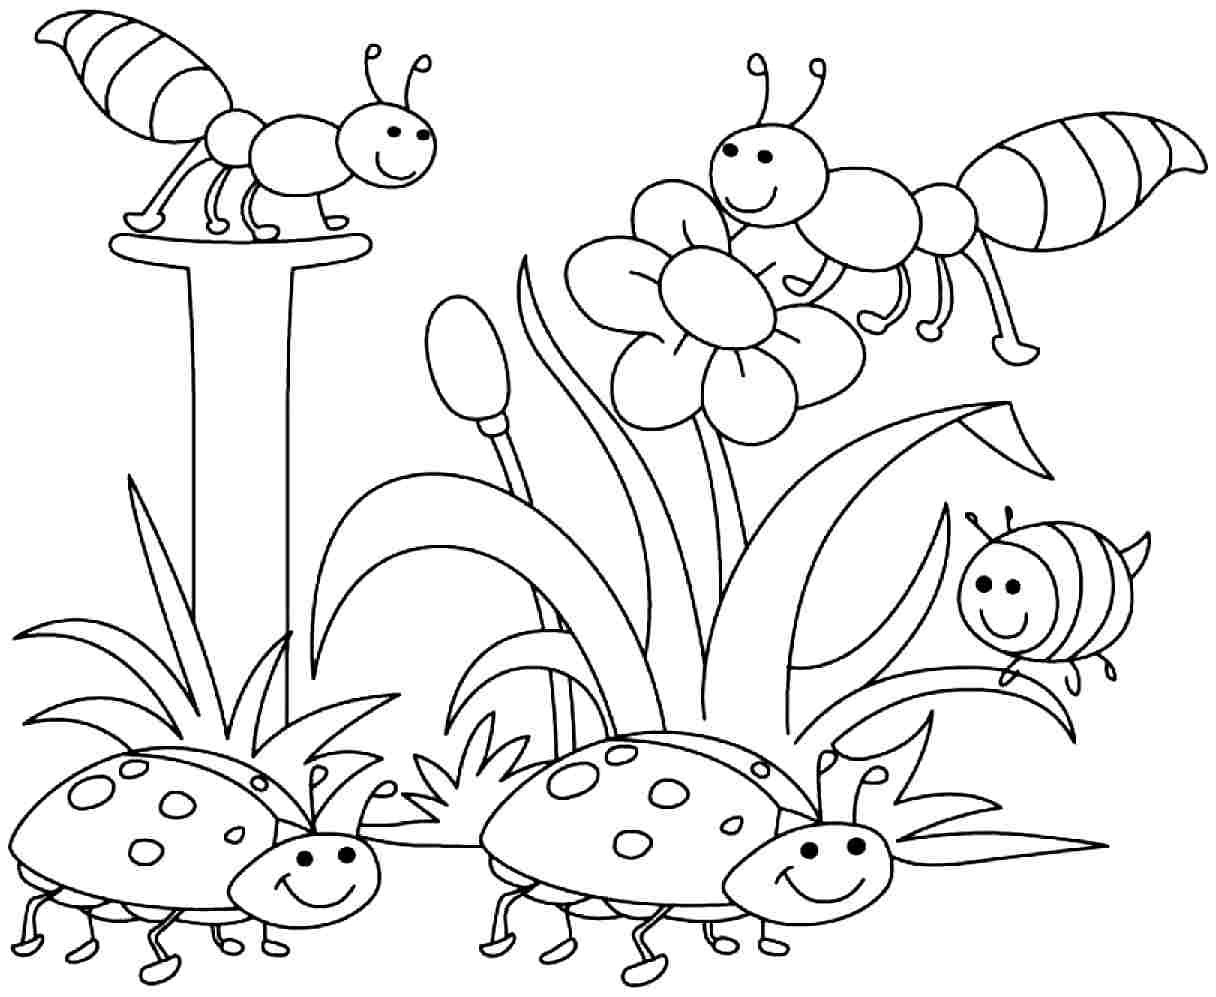 Spring animal coloring pages - Spring Themed Coloring Pages Best 2017